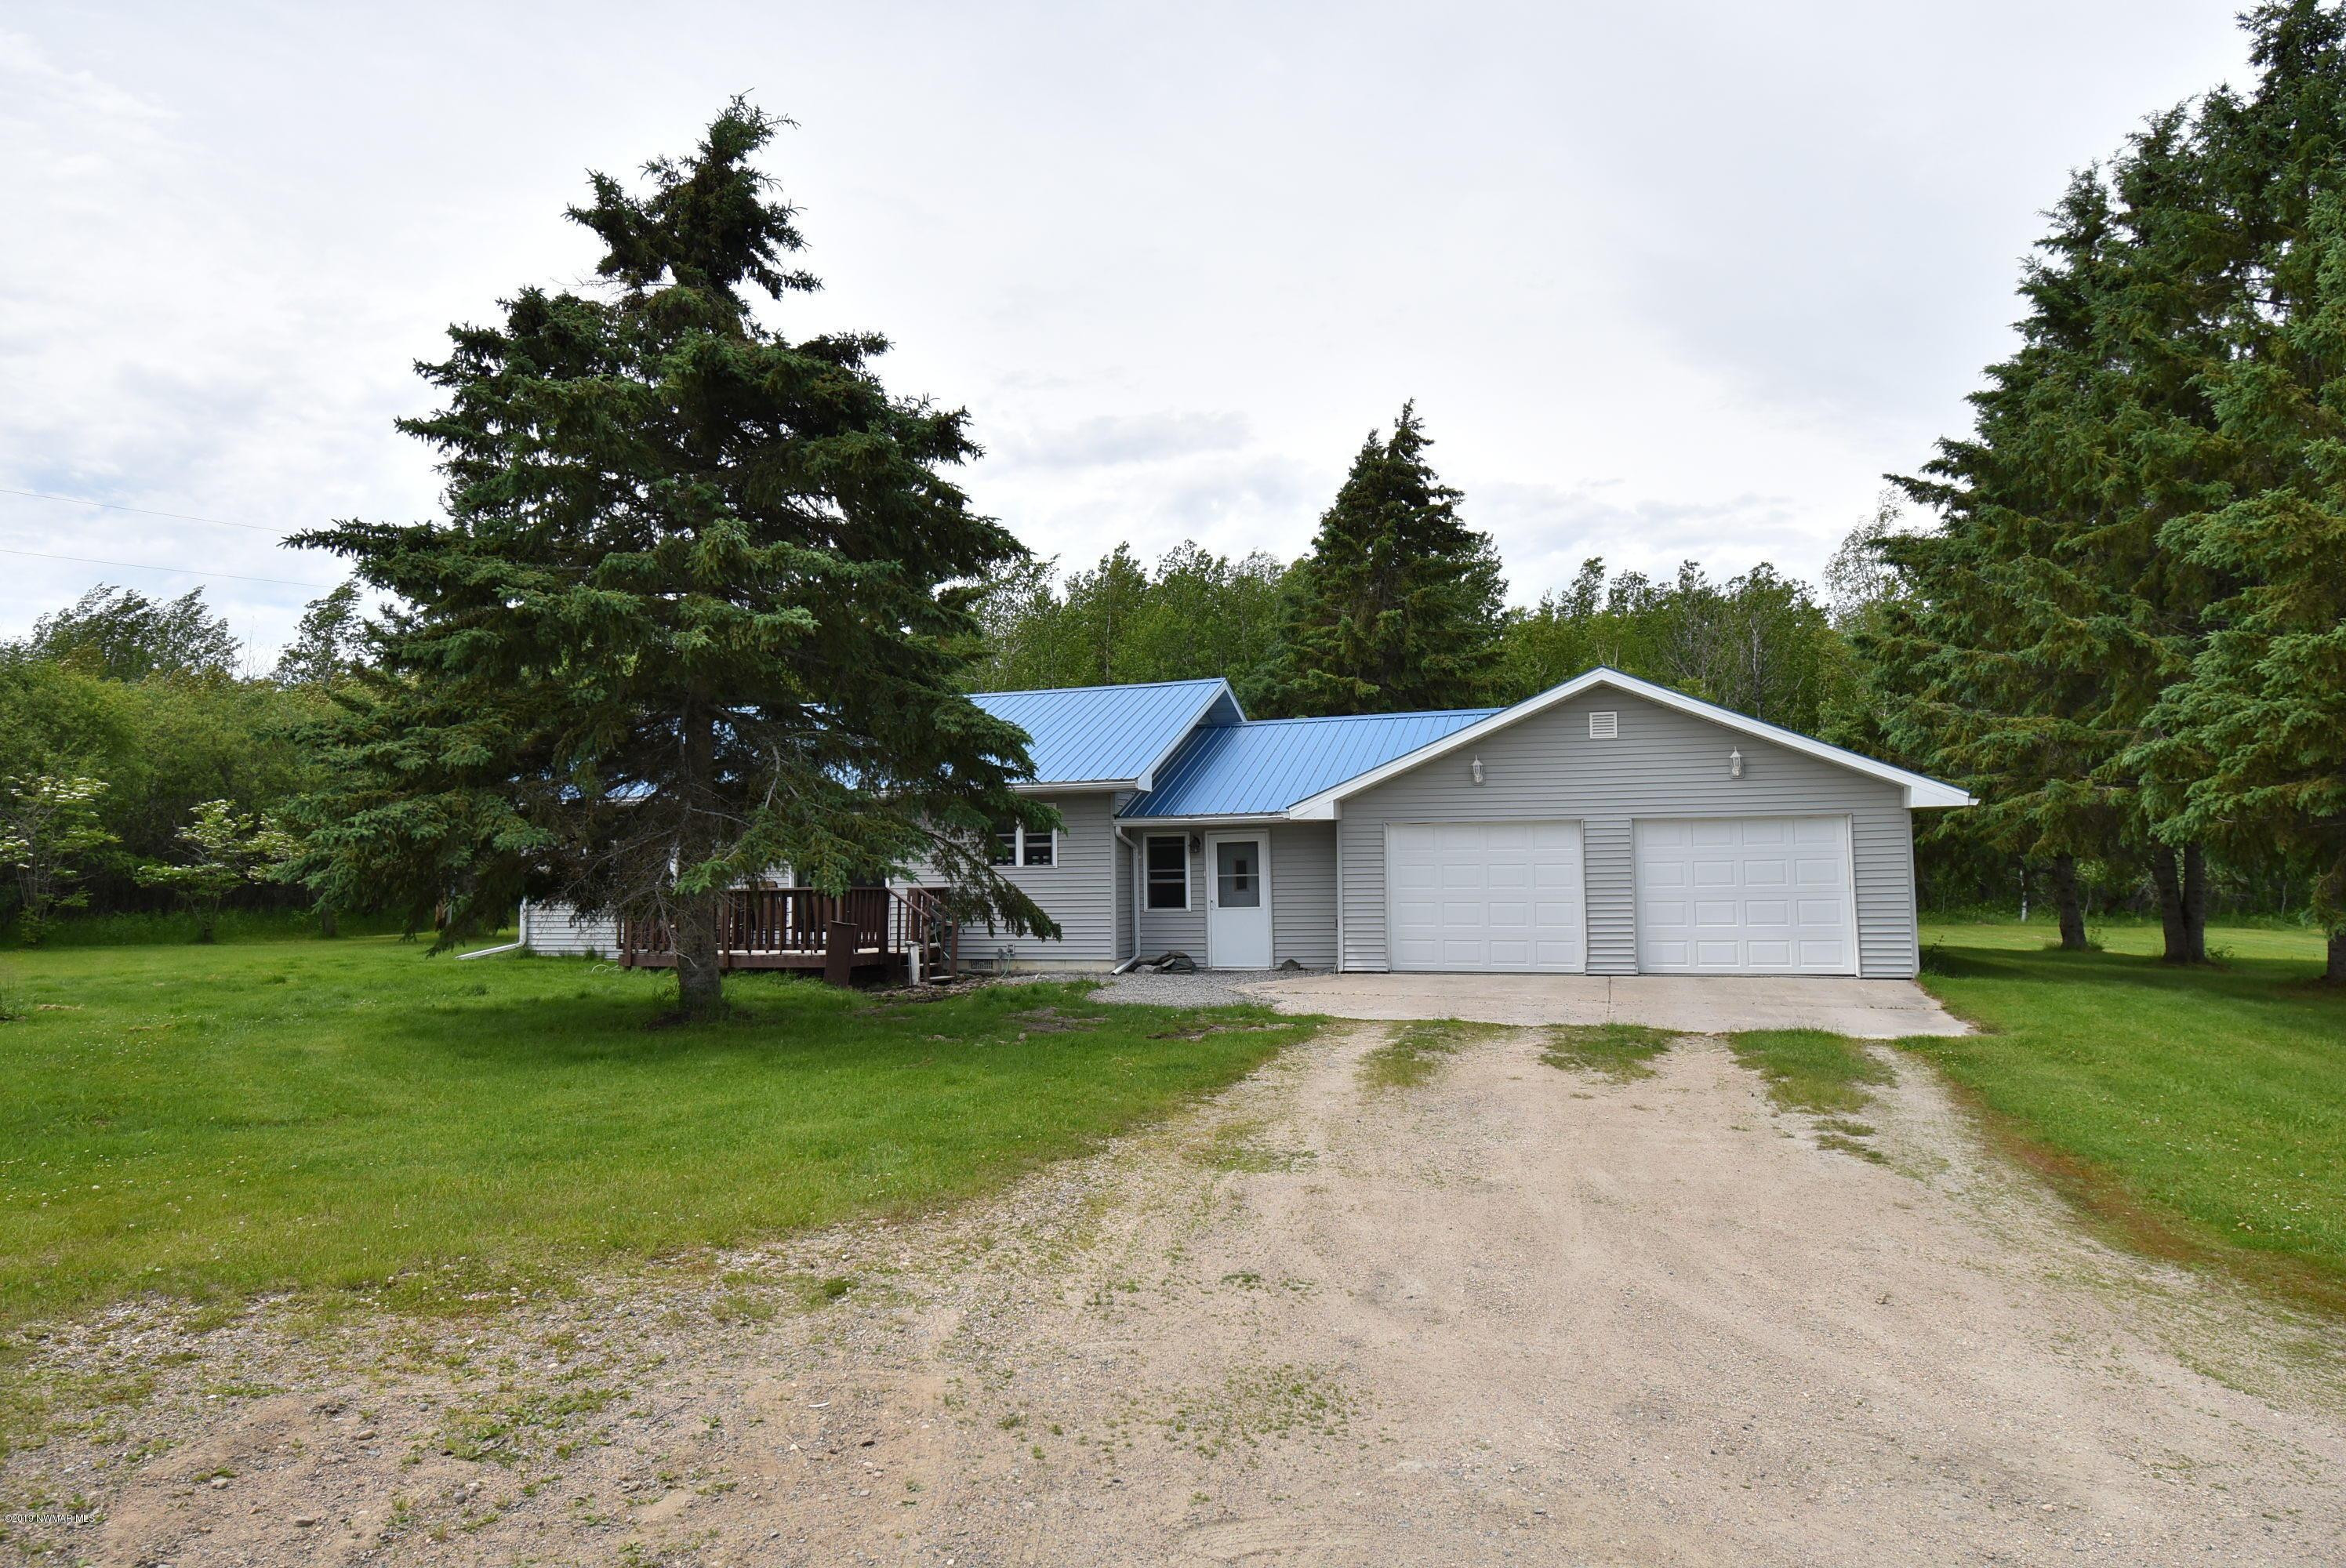 9425 44th Street NW, Roosevelt, MN 56673